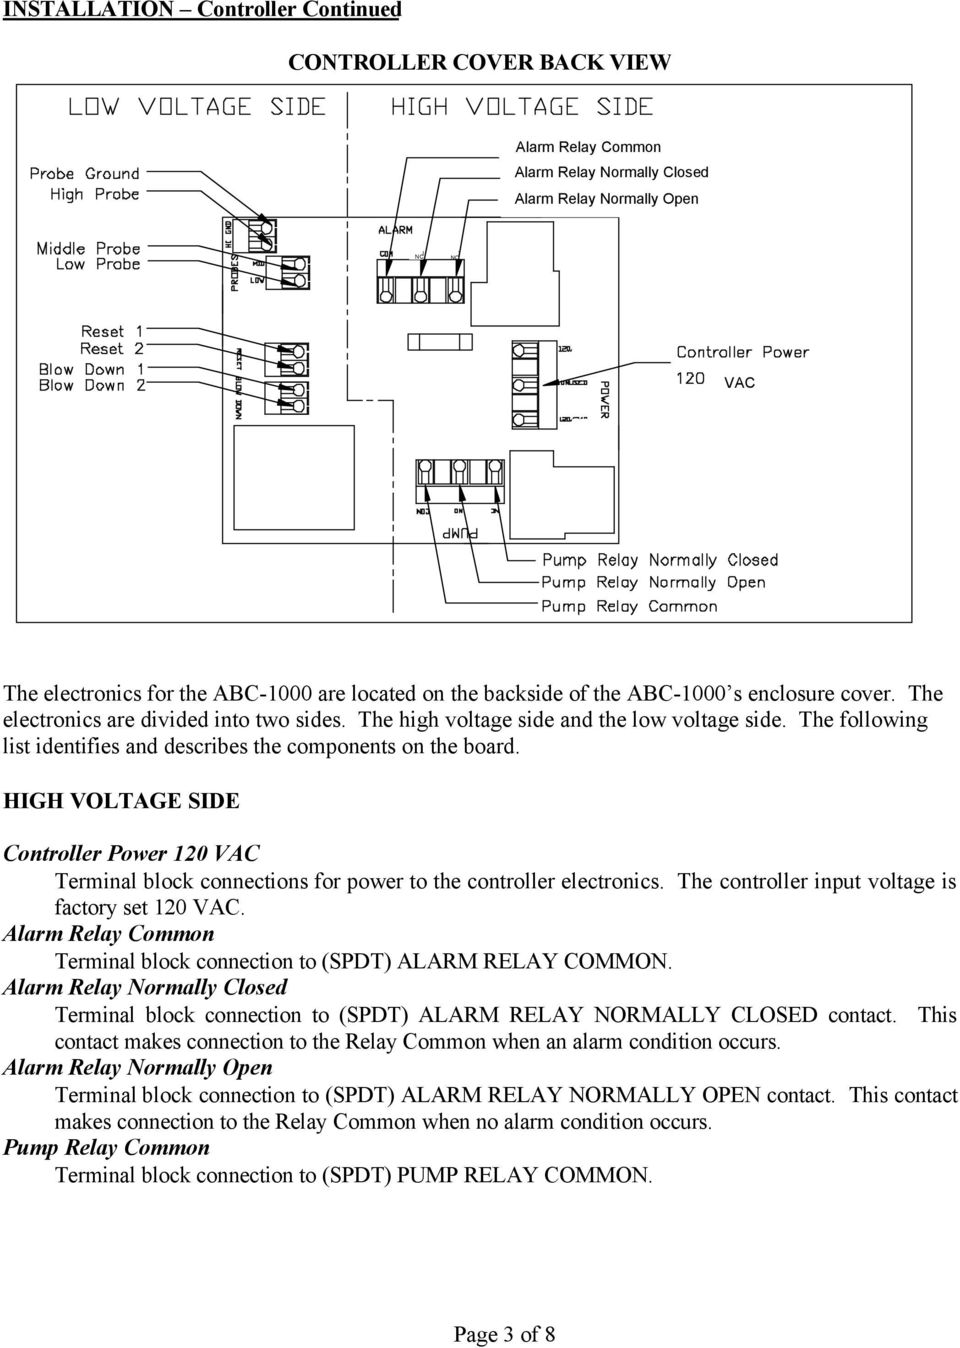 Abc 1000 Automatic Boiler Level Controller Operation And Common Terminal On Relay The Following List Identifies Describes Components Board High Voltage Side